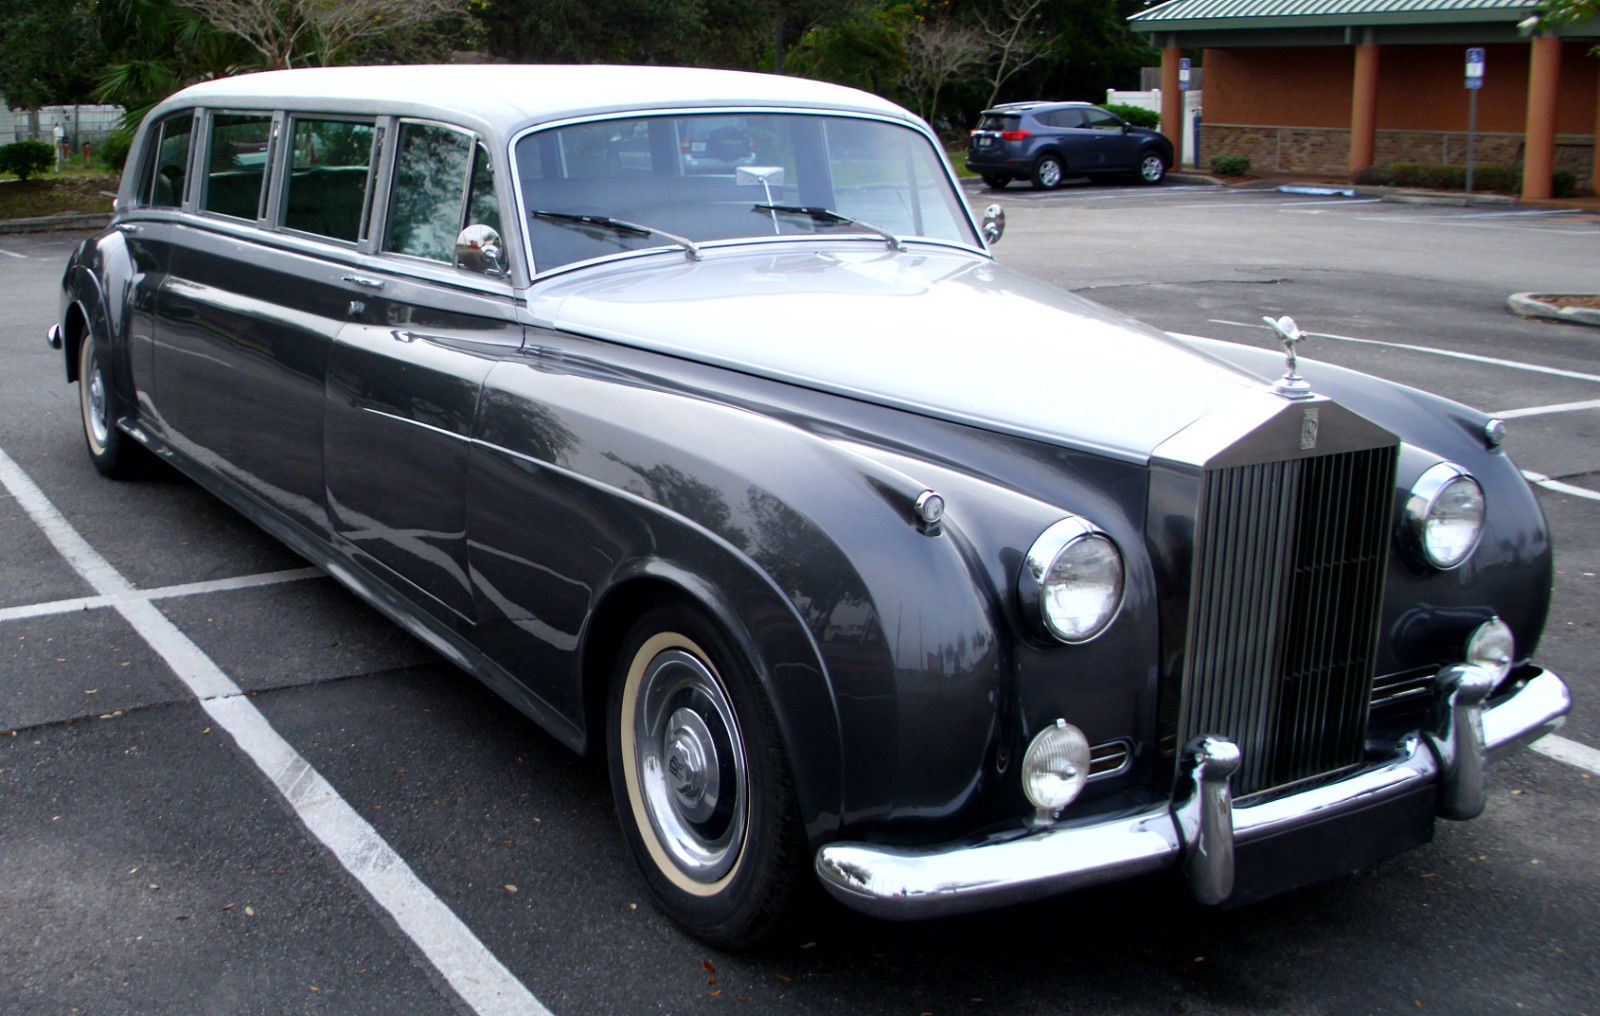 Attractive Old Custom Cars For Sale Crest - Classic Cars Ideas ...